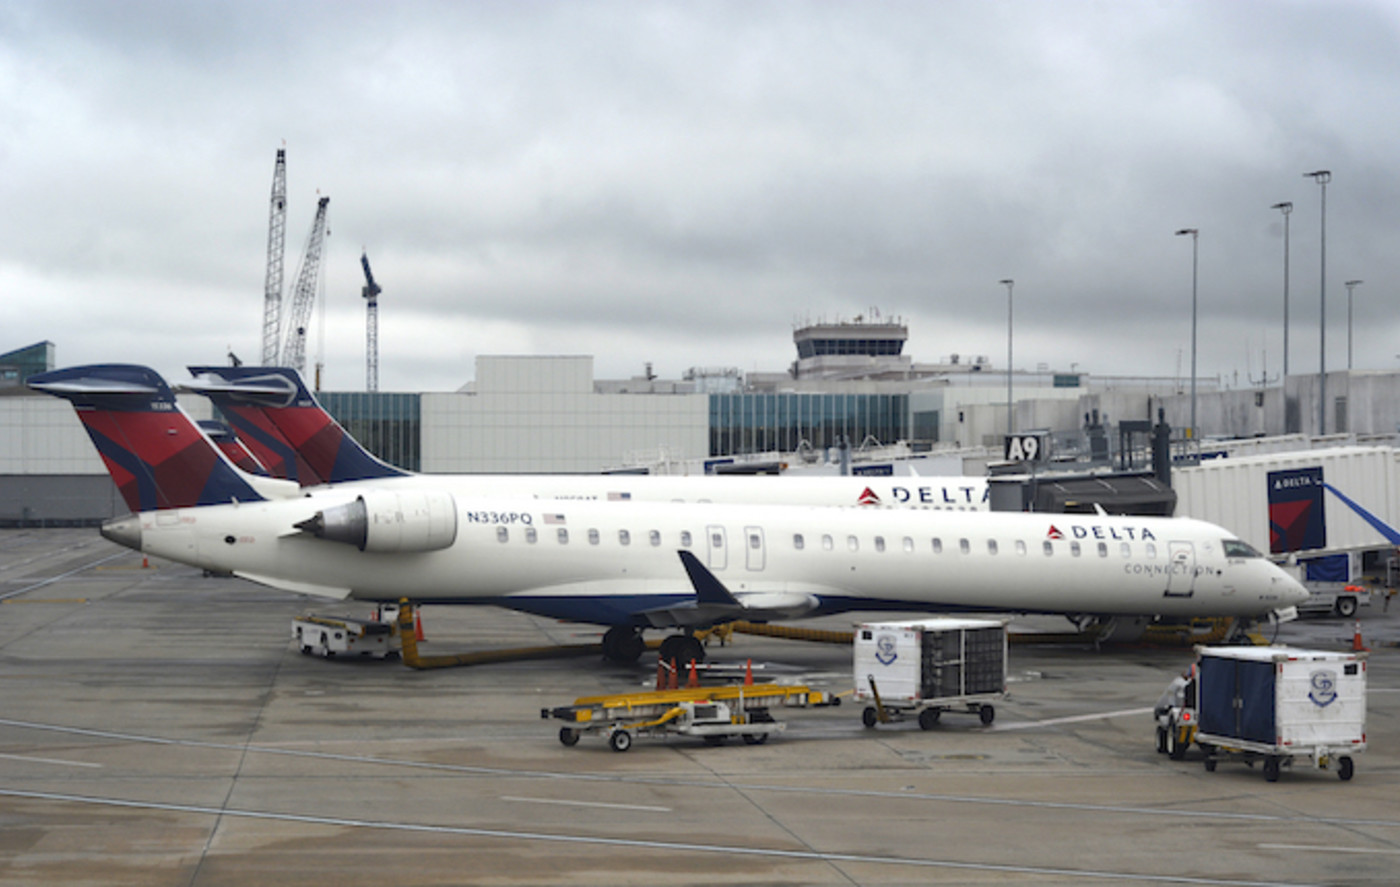 Delta Airlines at North Carolina airport